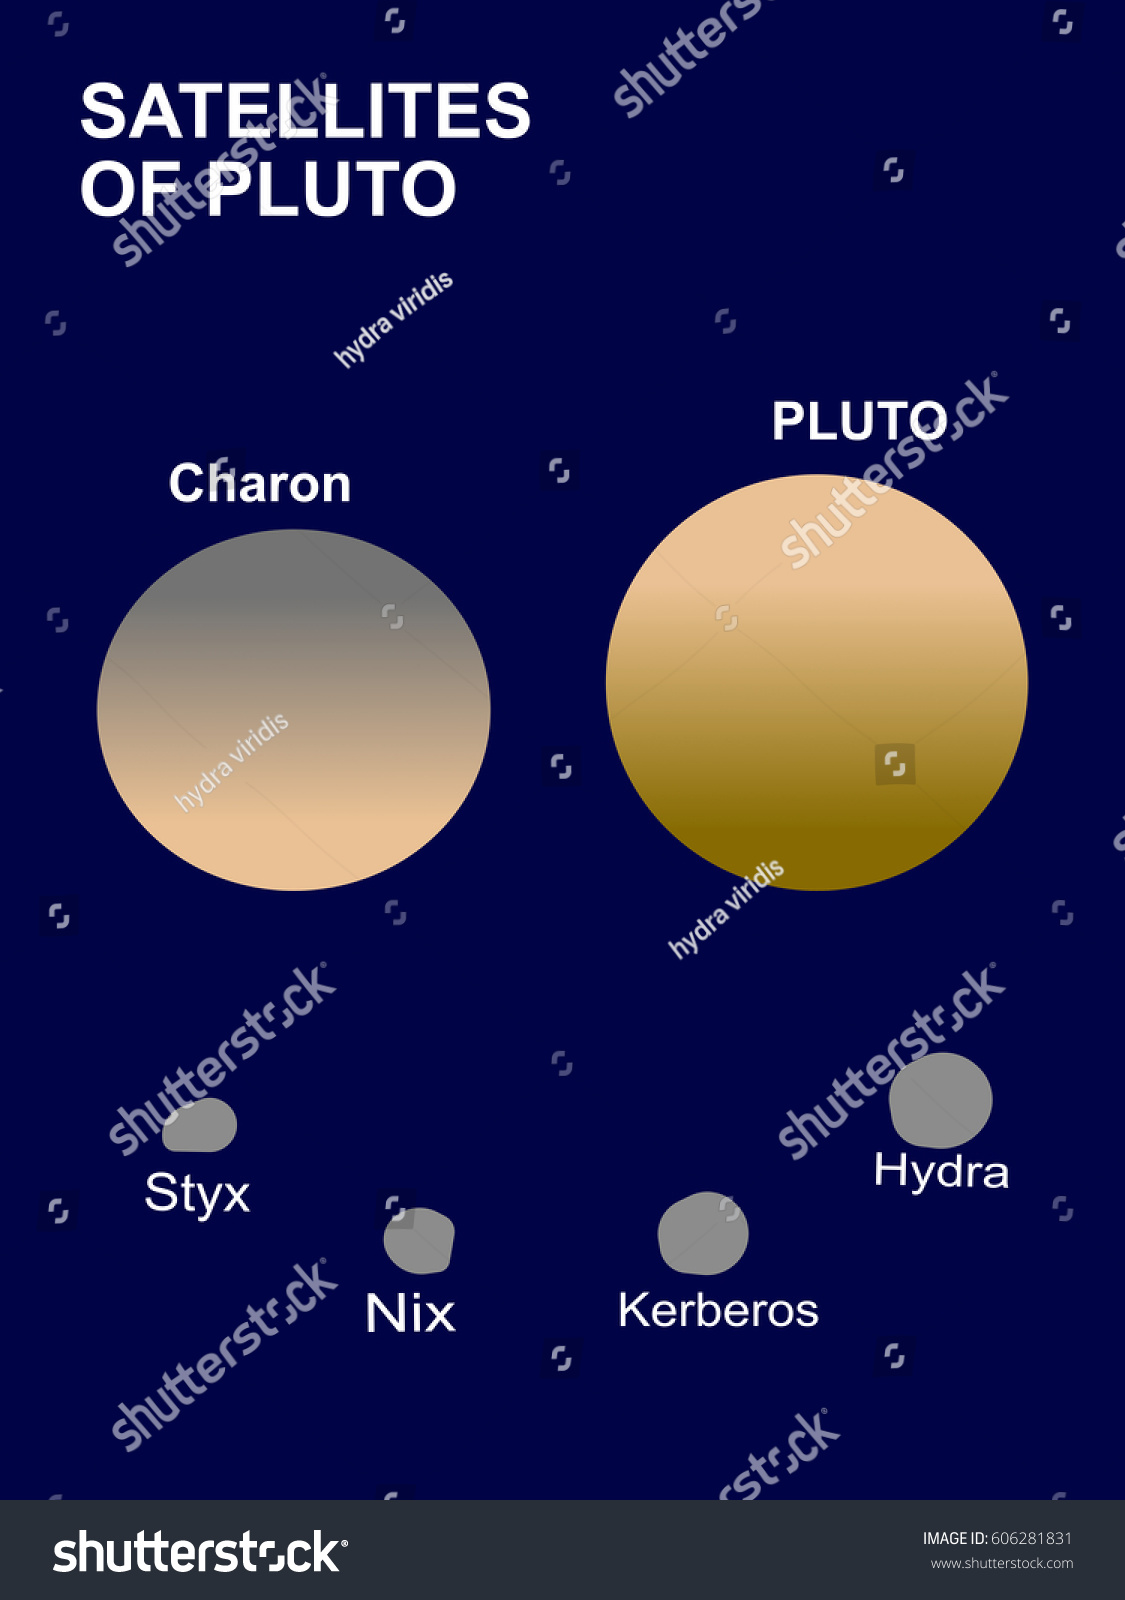 Pluto dwarf planet solar system satellites stock illustration pluto a dwarf planet of the solar system and its satellites or moons charon publicscrutiny Choice Image